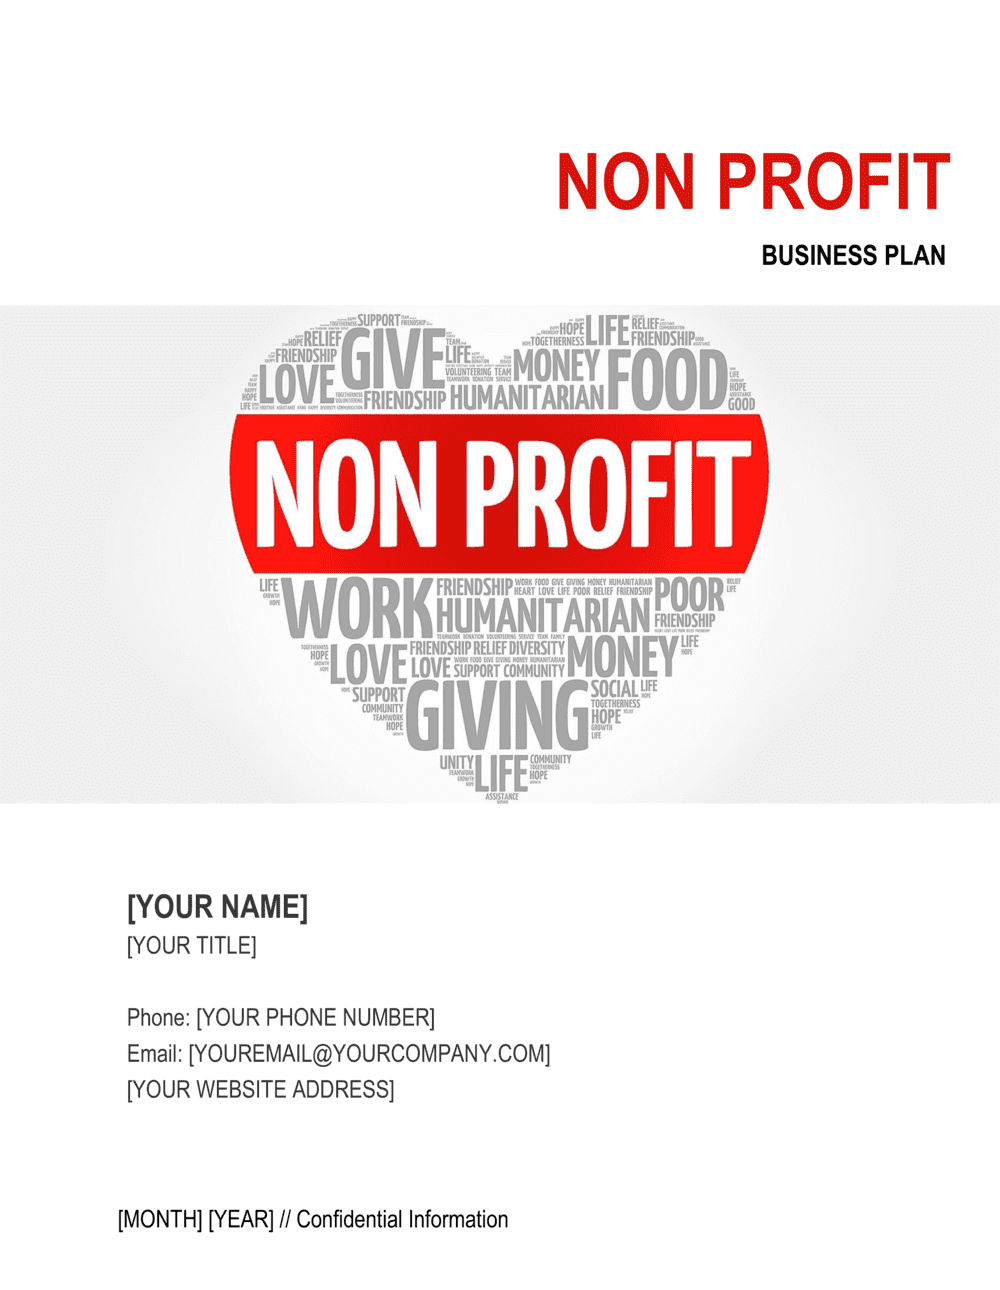 Business-in-a-Box's Non-profit Organization Business Plan 3 Template